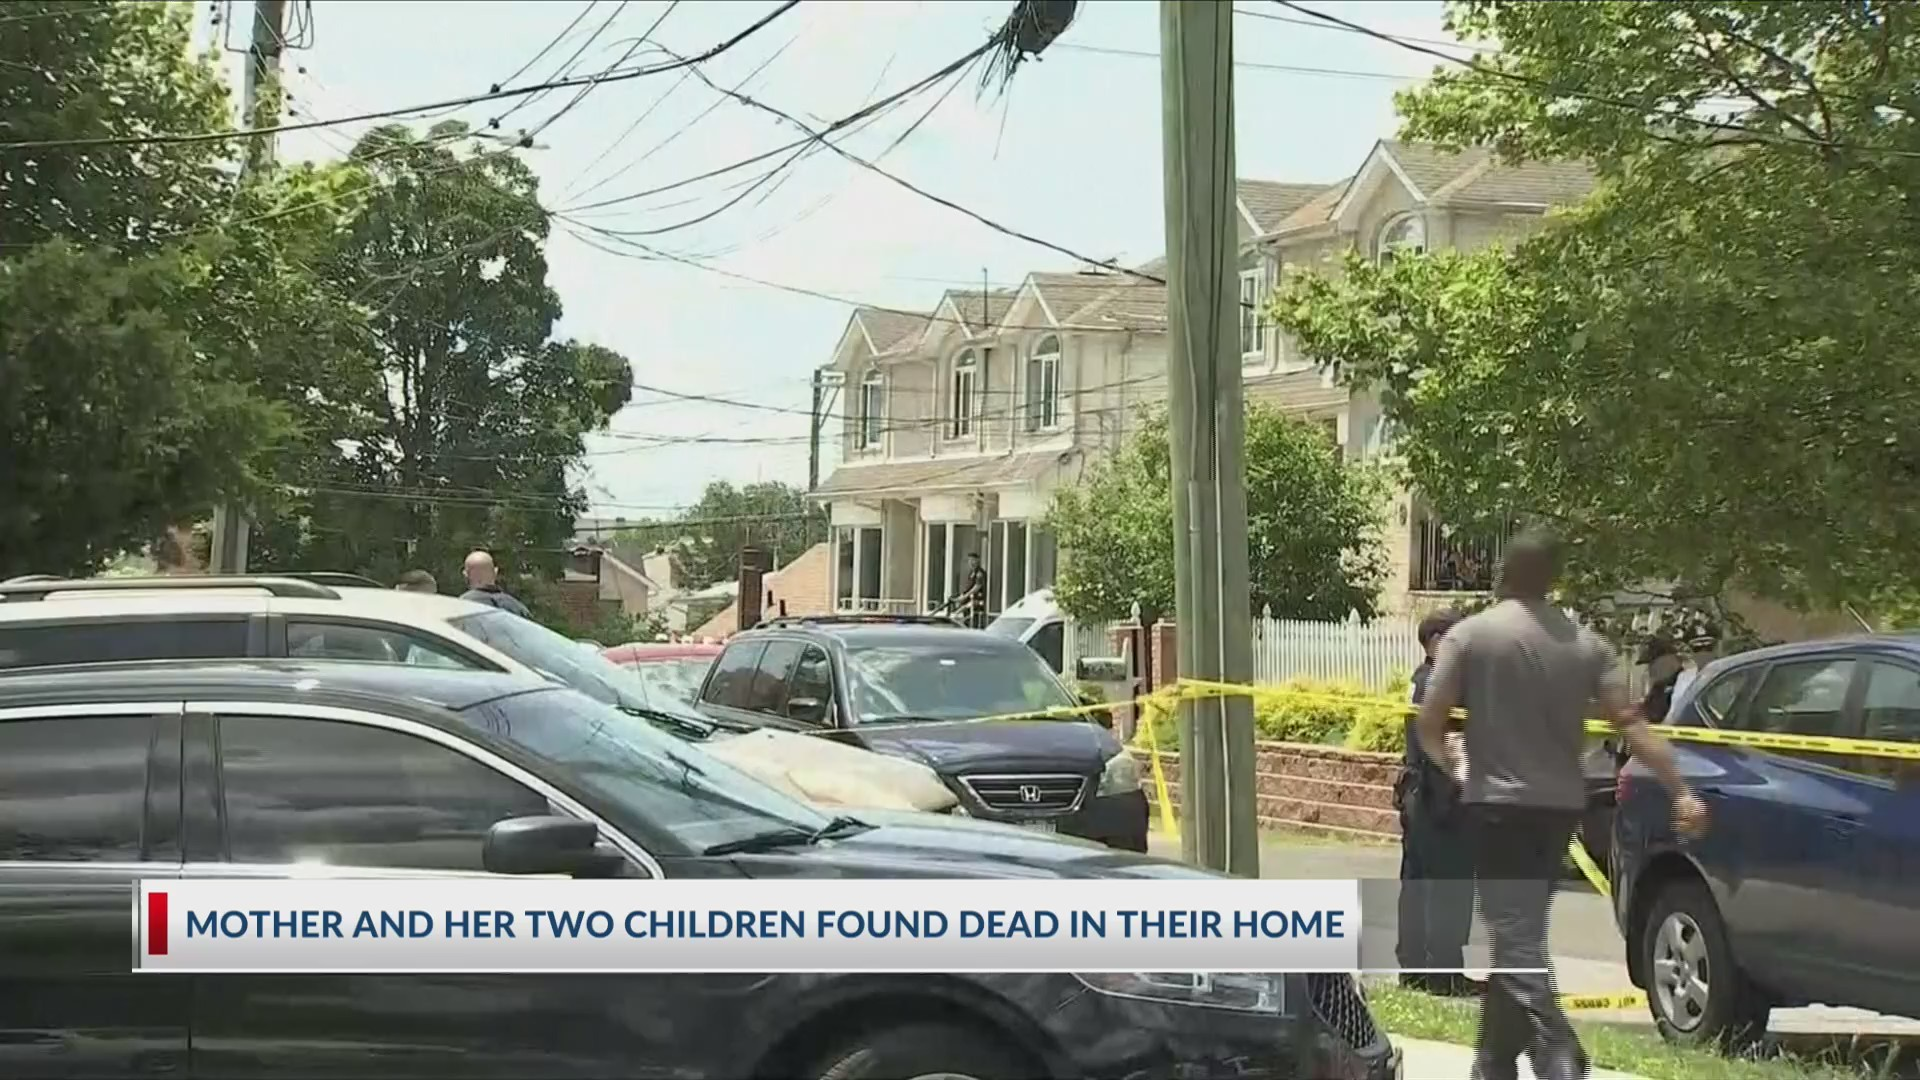 A mother and two children found dead in their home